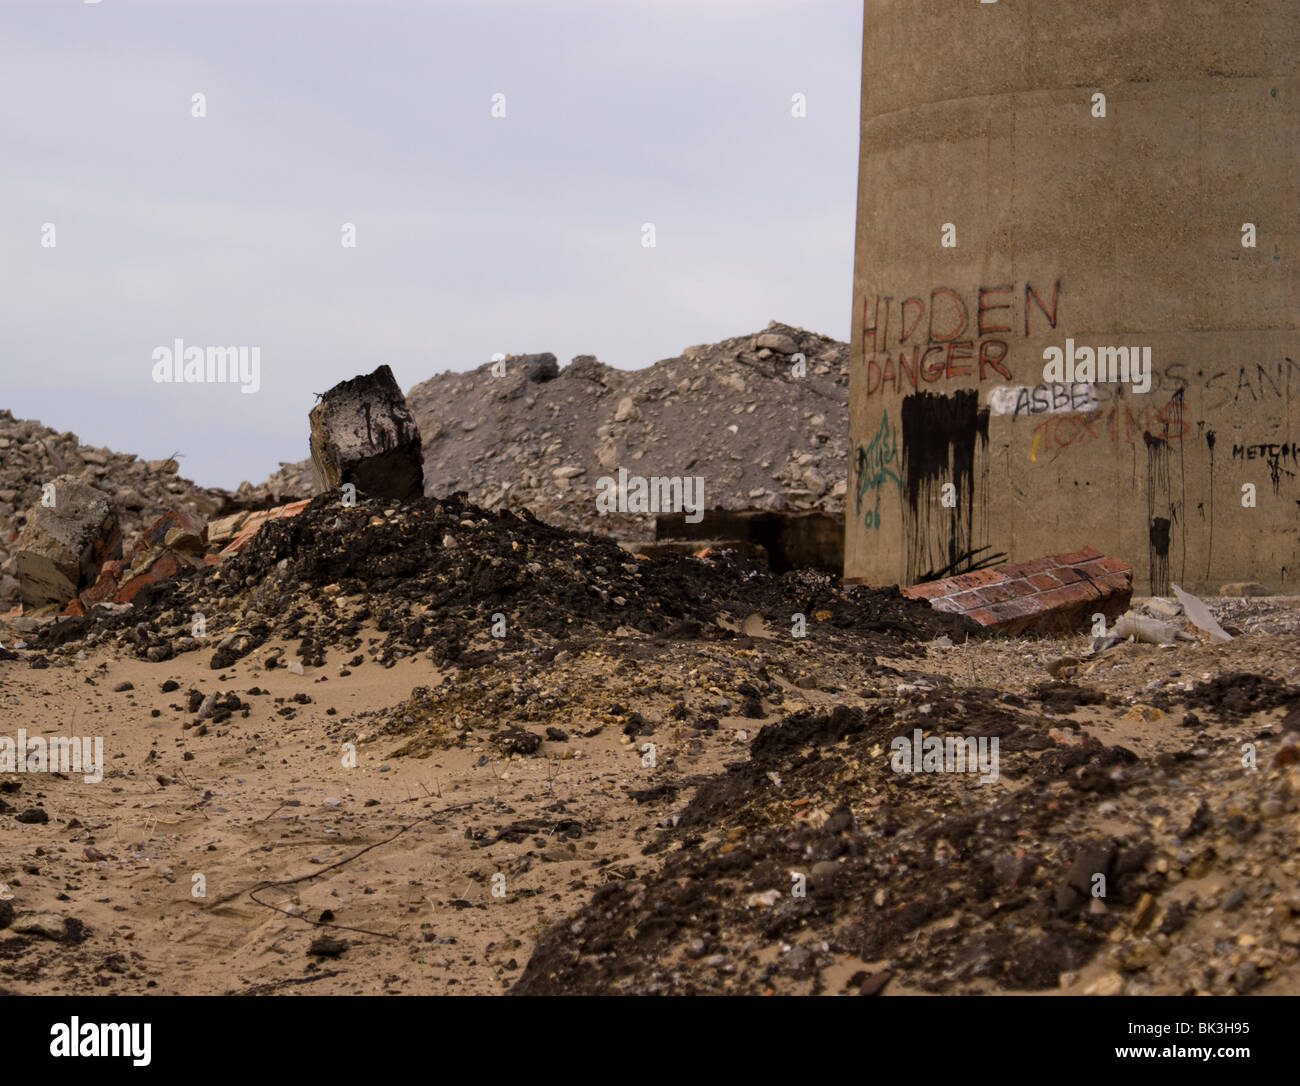 URBAN DECAY SITE OF THE DECAYED AND DERELICT STEETLY INDUSTRIAL SITE HARTLEPOOL UK - Stock Image